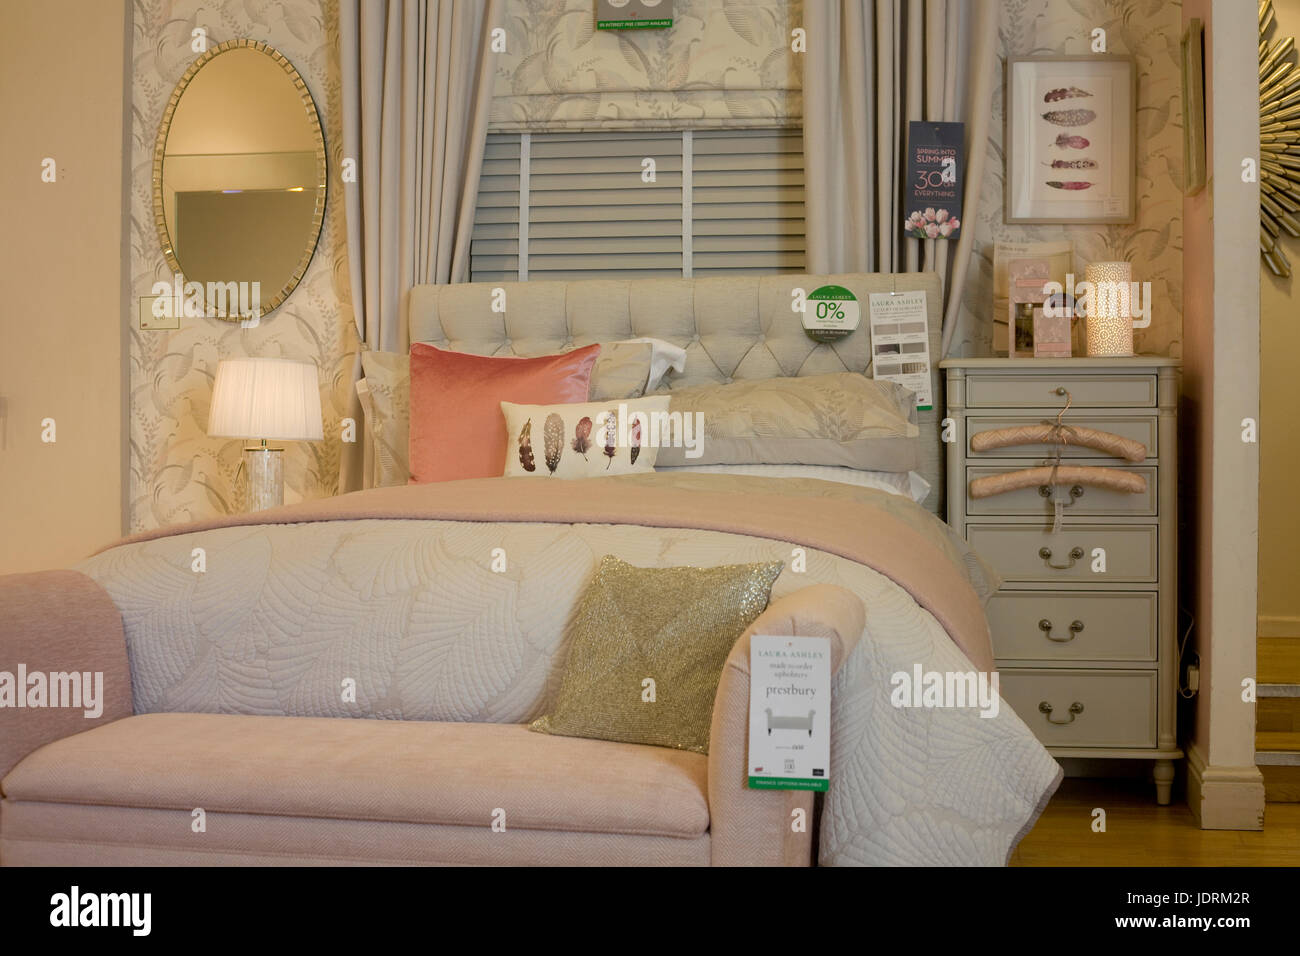 Bedroom Furniture Photos Bedroom Furniture Images Alamy